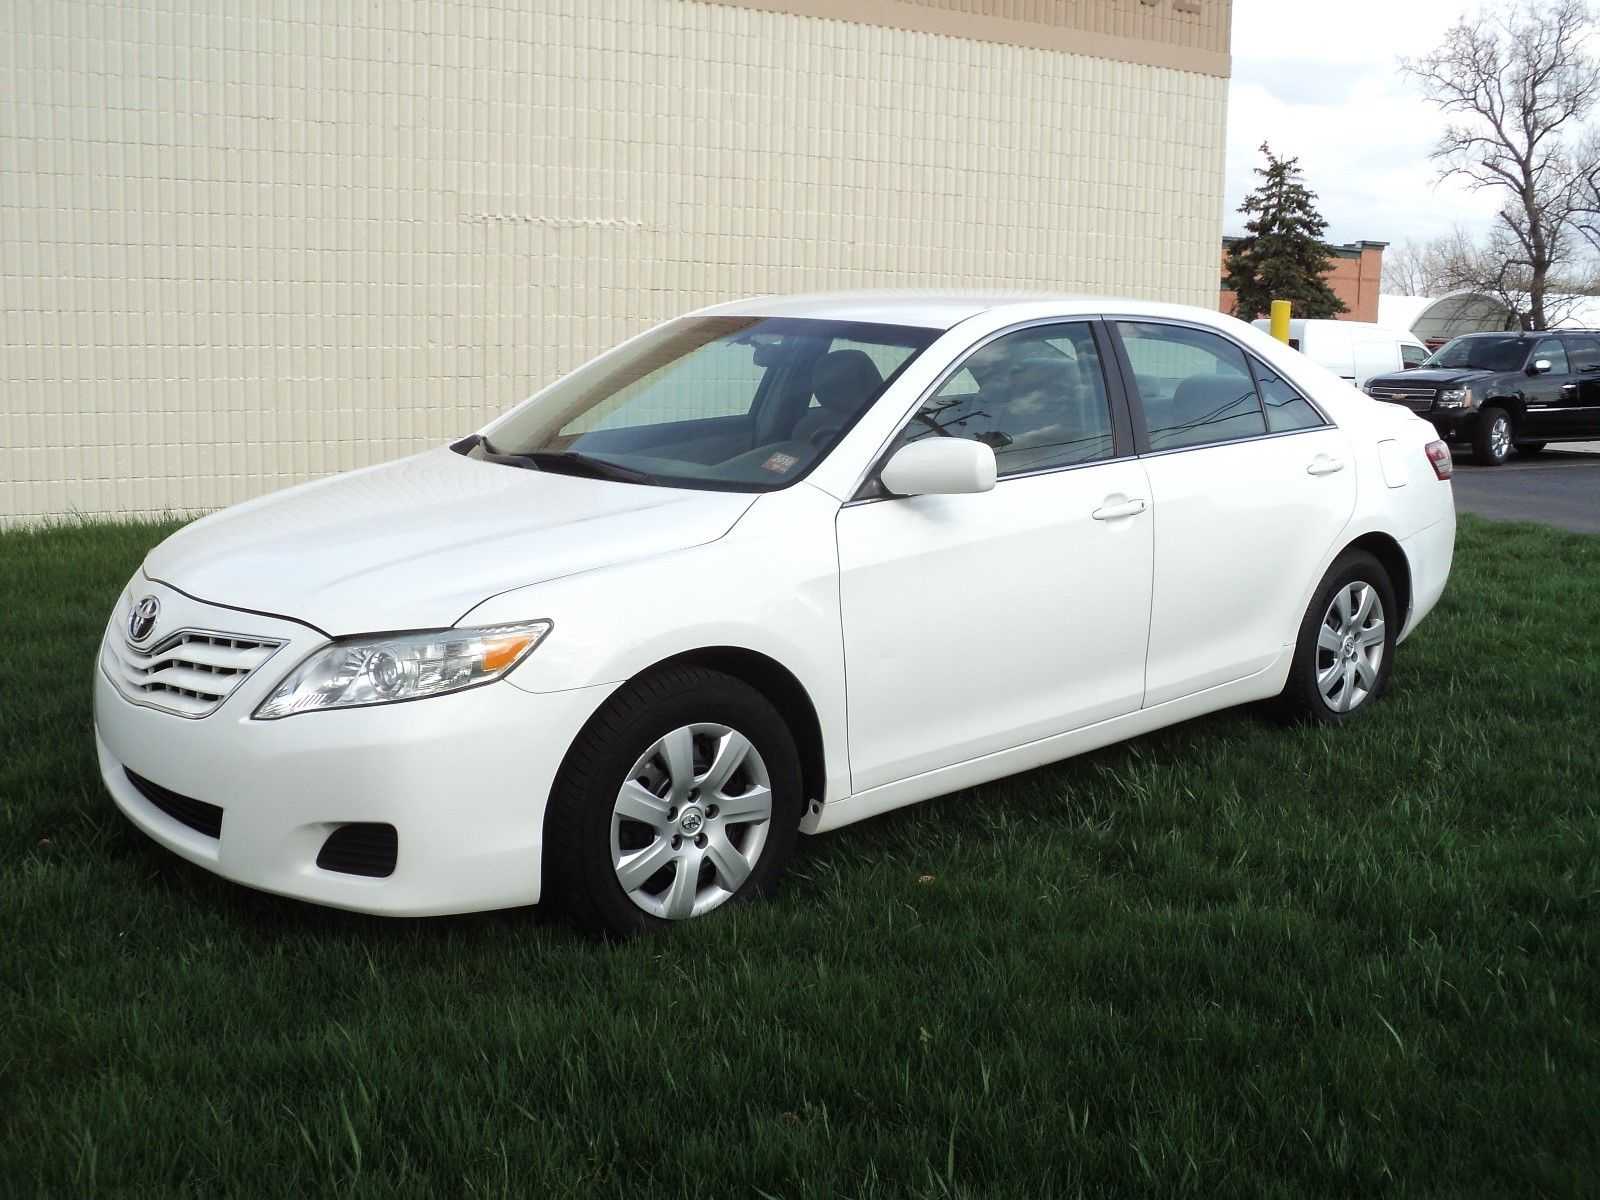 Toyota Camry Le 2010 White